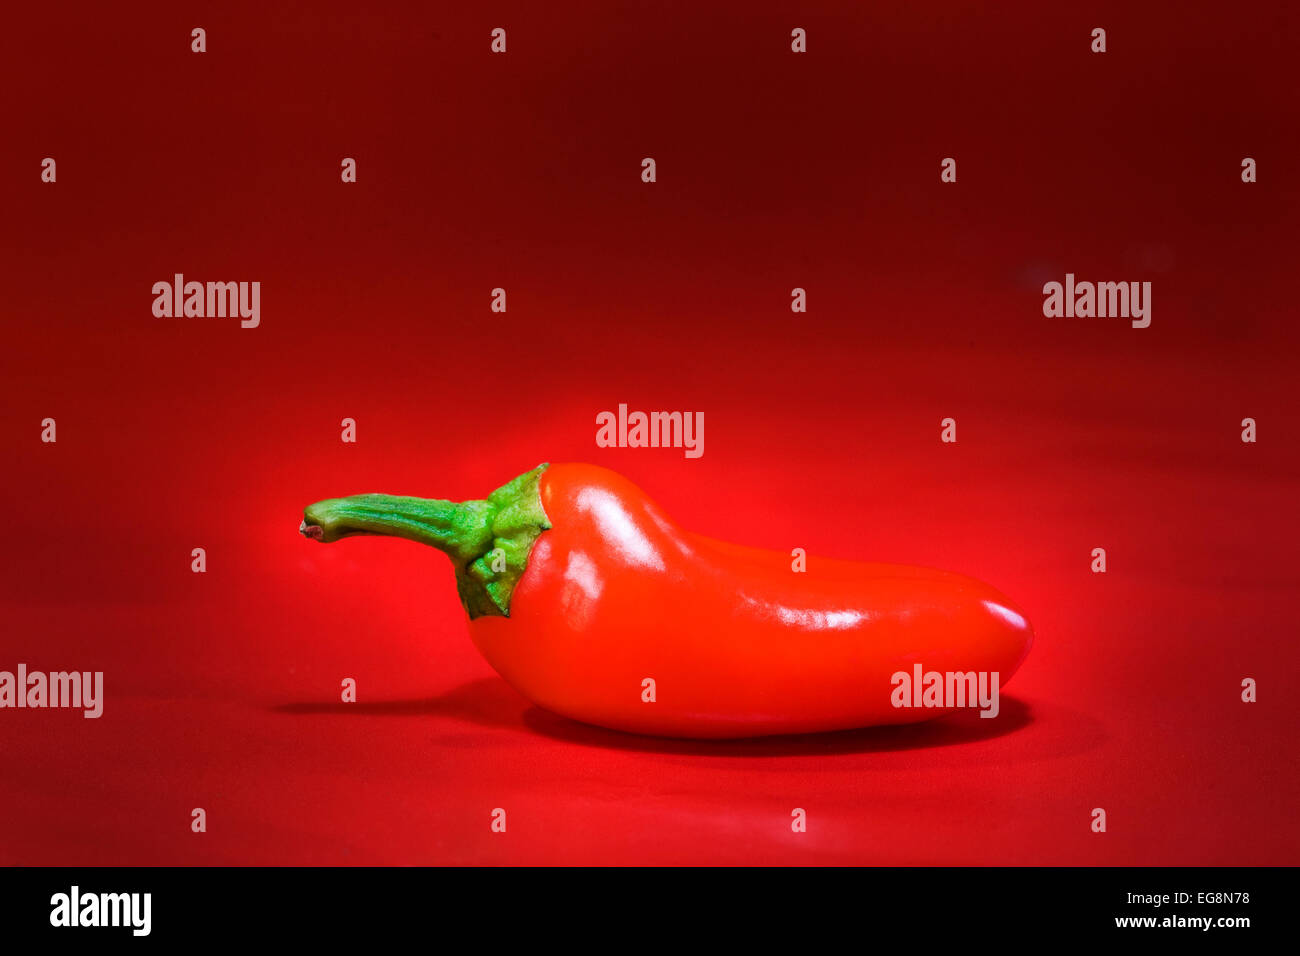 The perfect red chile pepper from the Hatch Valley in New Mexico - Stock Image